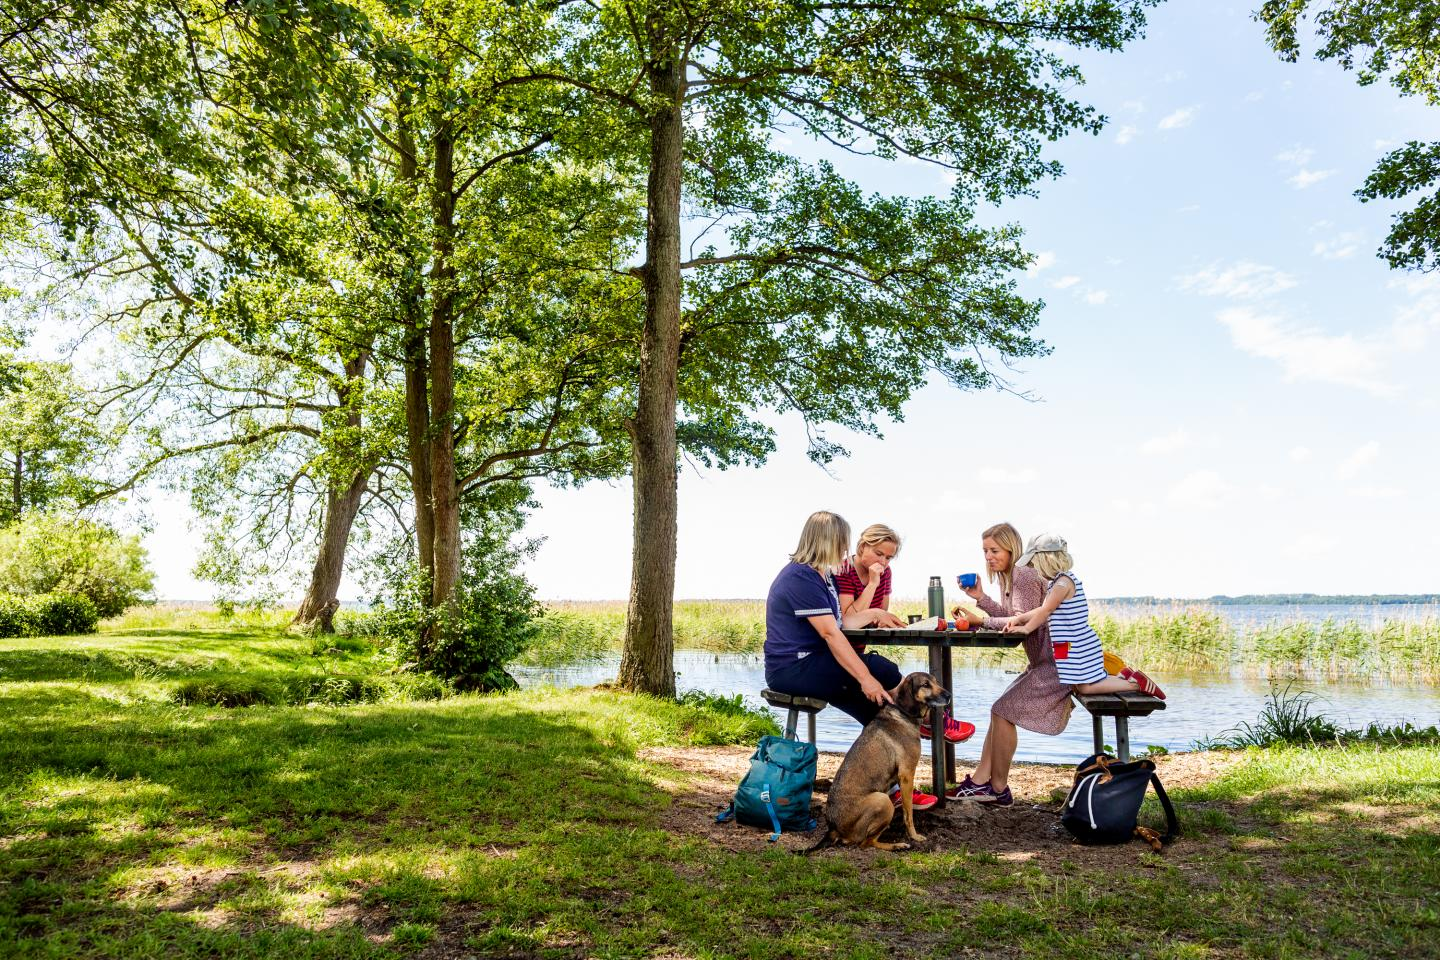 Three women, a child and a dog having coffee at a rest area next to a lake.